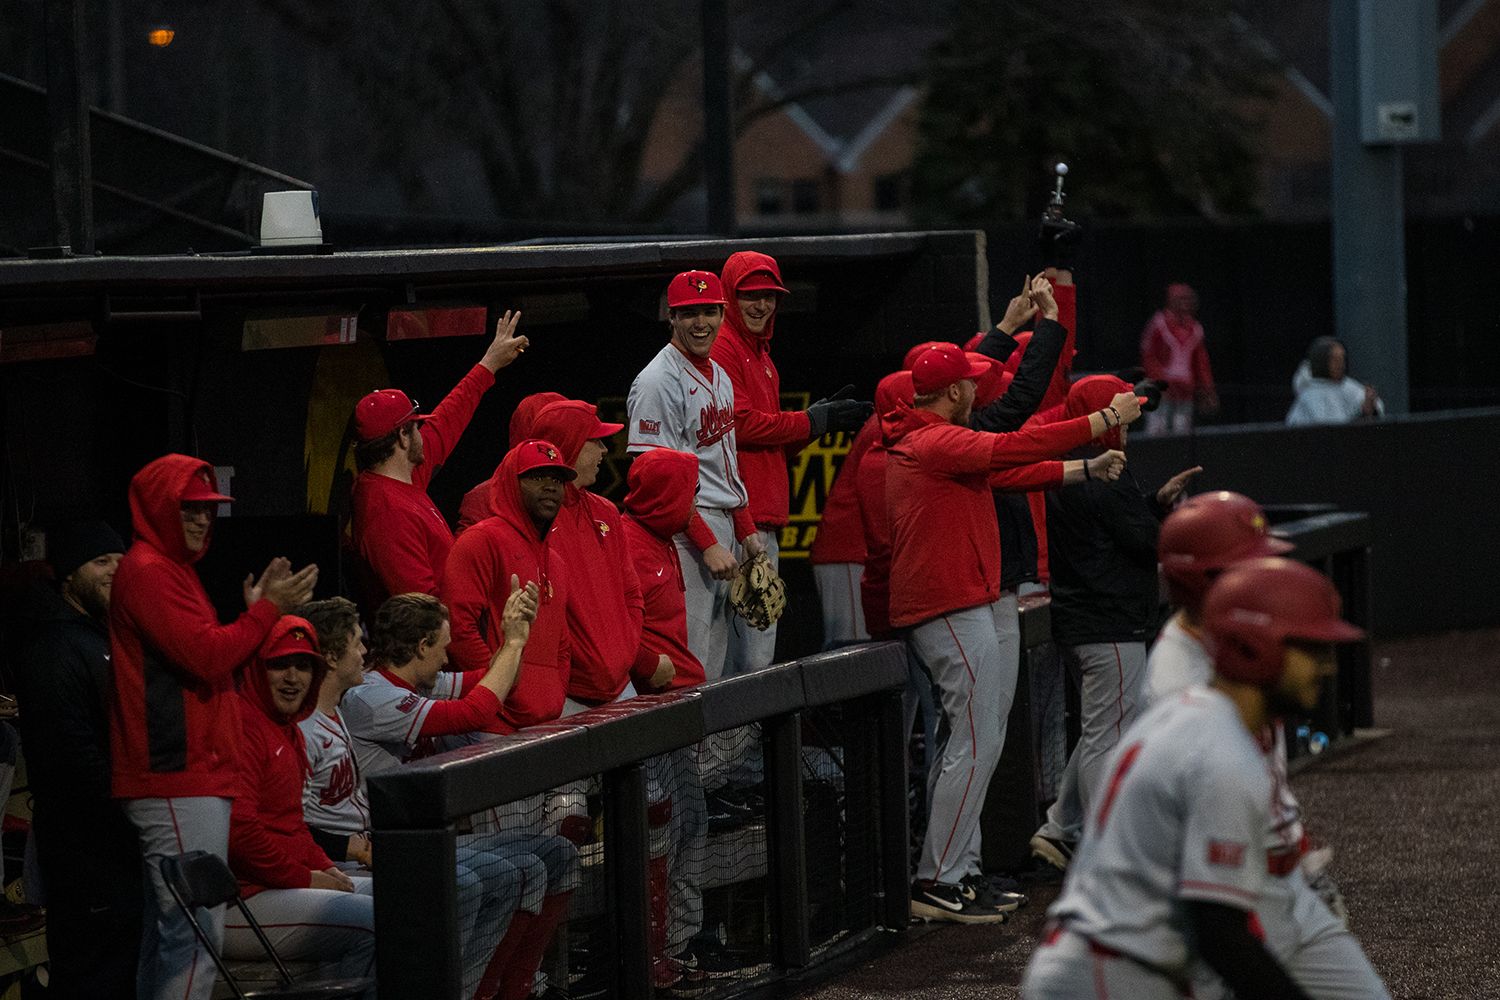 The+Redbirds+dugout+celebrates+after+scoring+a+point+during+a+Iowa+Hawkeyes+baseball+game+against+Illinois+State+on+Wednesday%2C+Apr.+3%2C+2019.+The+Hawkeyes+lost+to+the+Redbirds+11-6.+%28Roman+Slabach%2FThe+Daily+Iowan%29